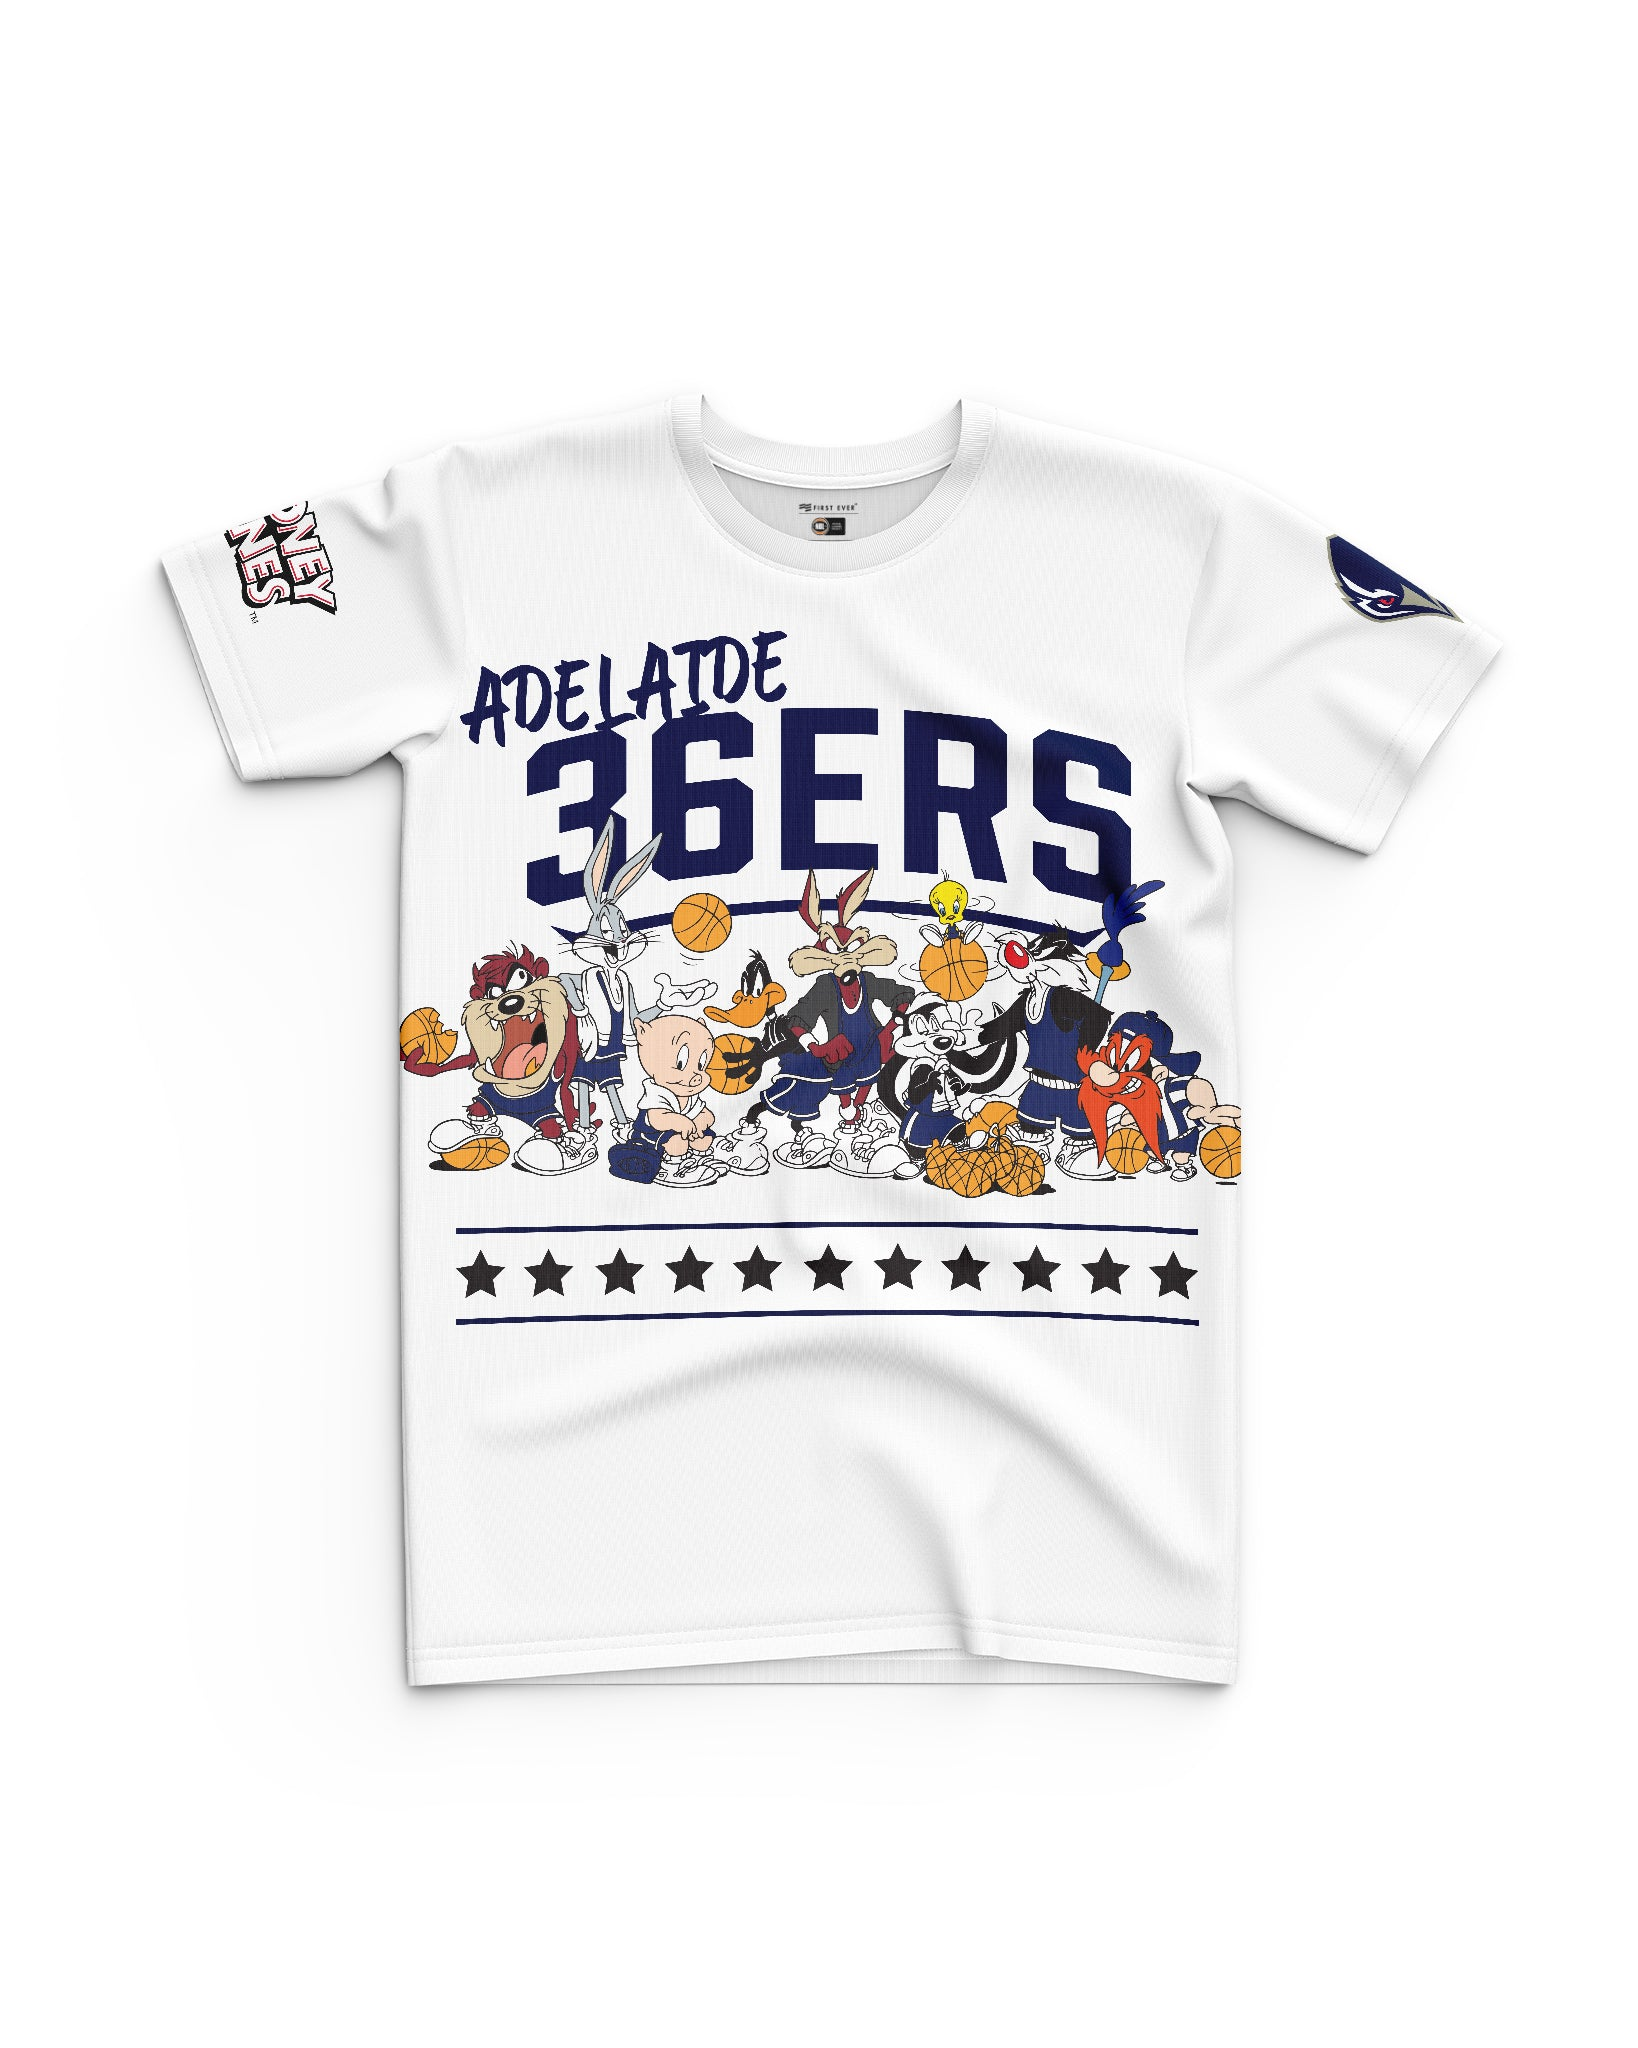 Adelaide 36ers 20/21 Looney Tunes Youth Squad Tee